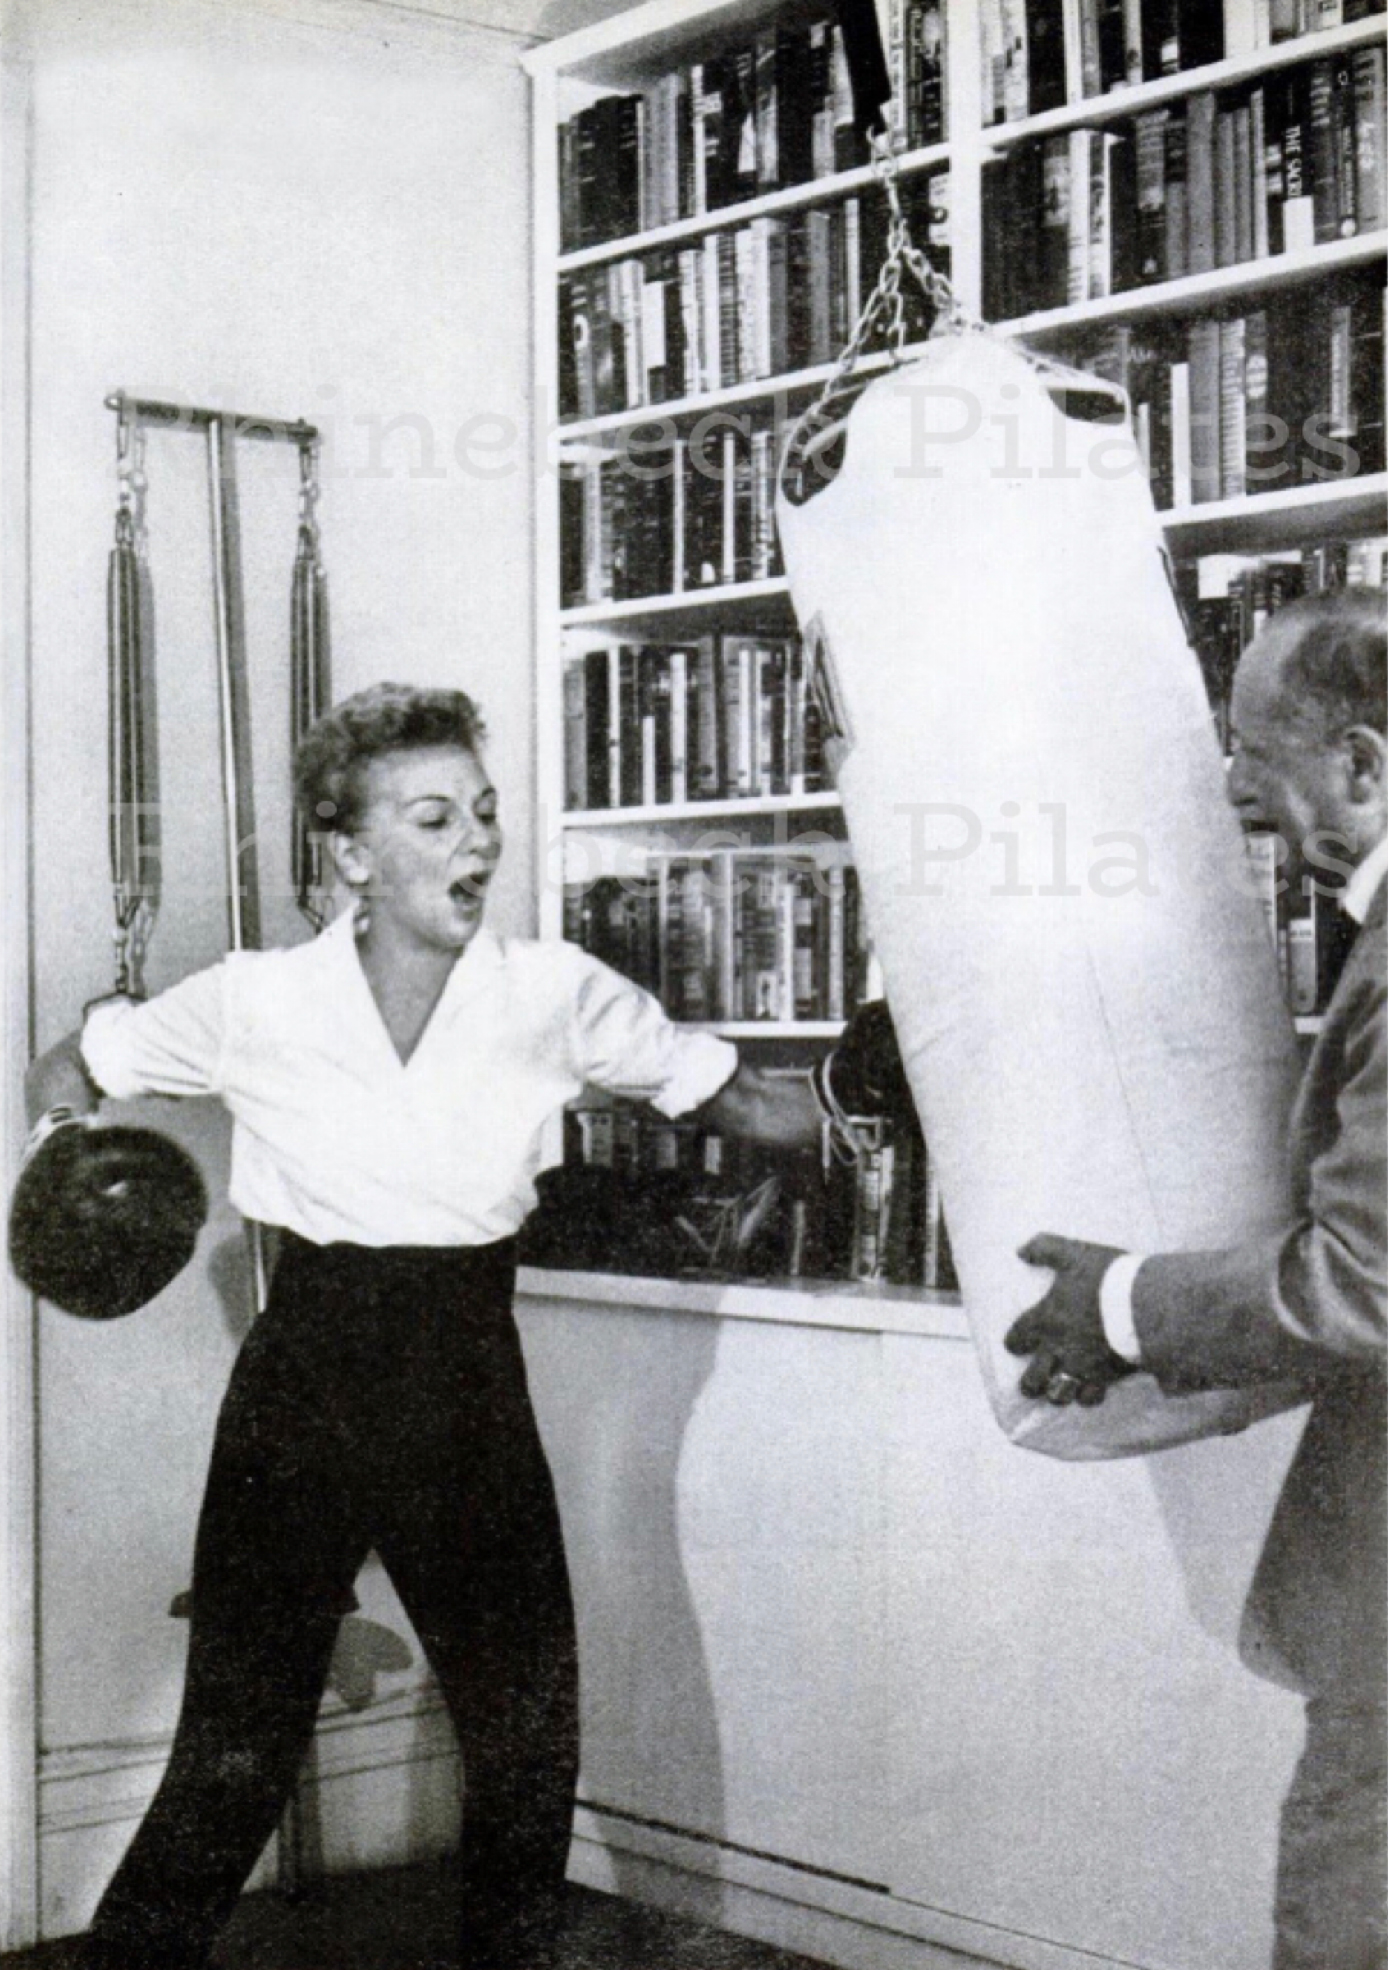 William Herman and Mary Martin with punching bag